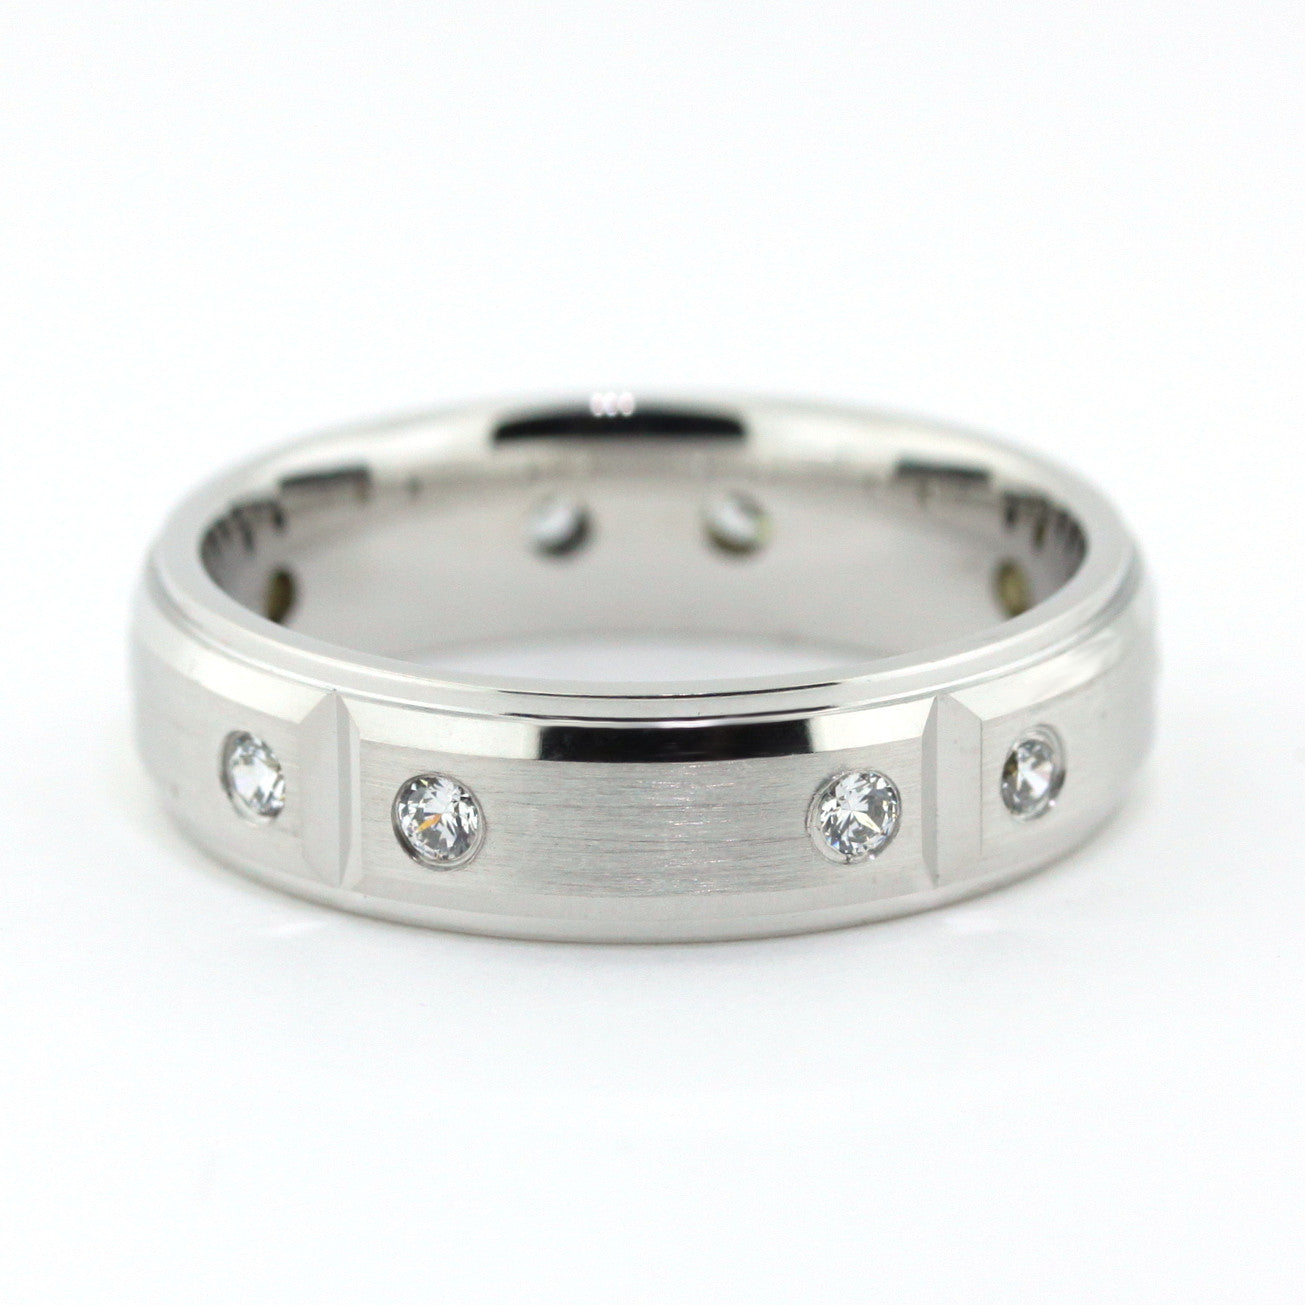 Men's Diamond Wedding Band - Robert - Moissanite Rings